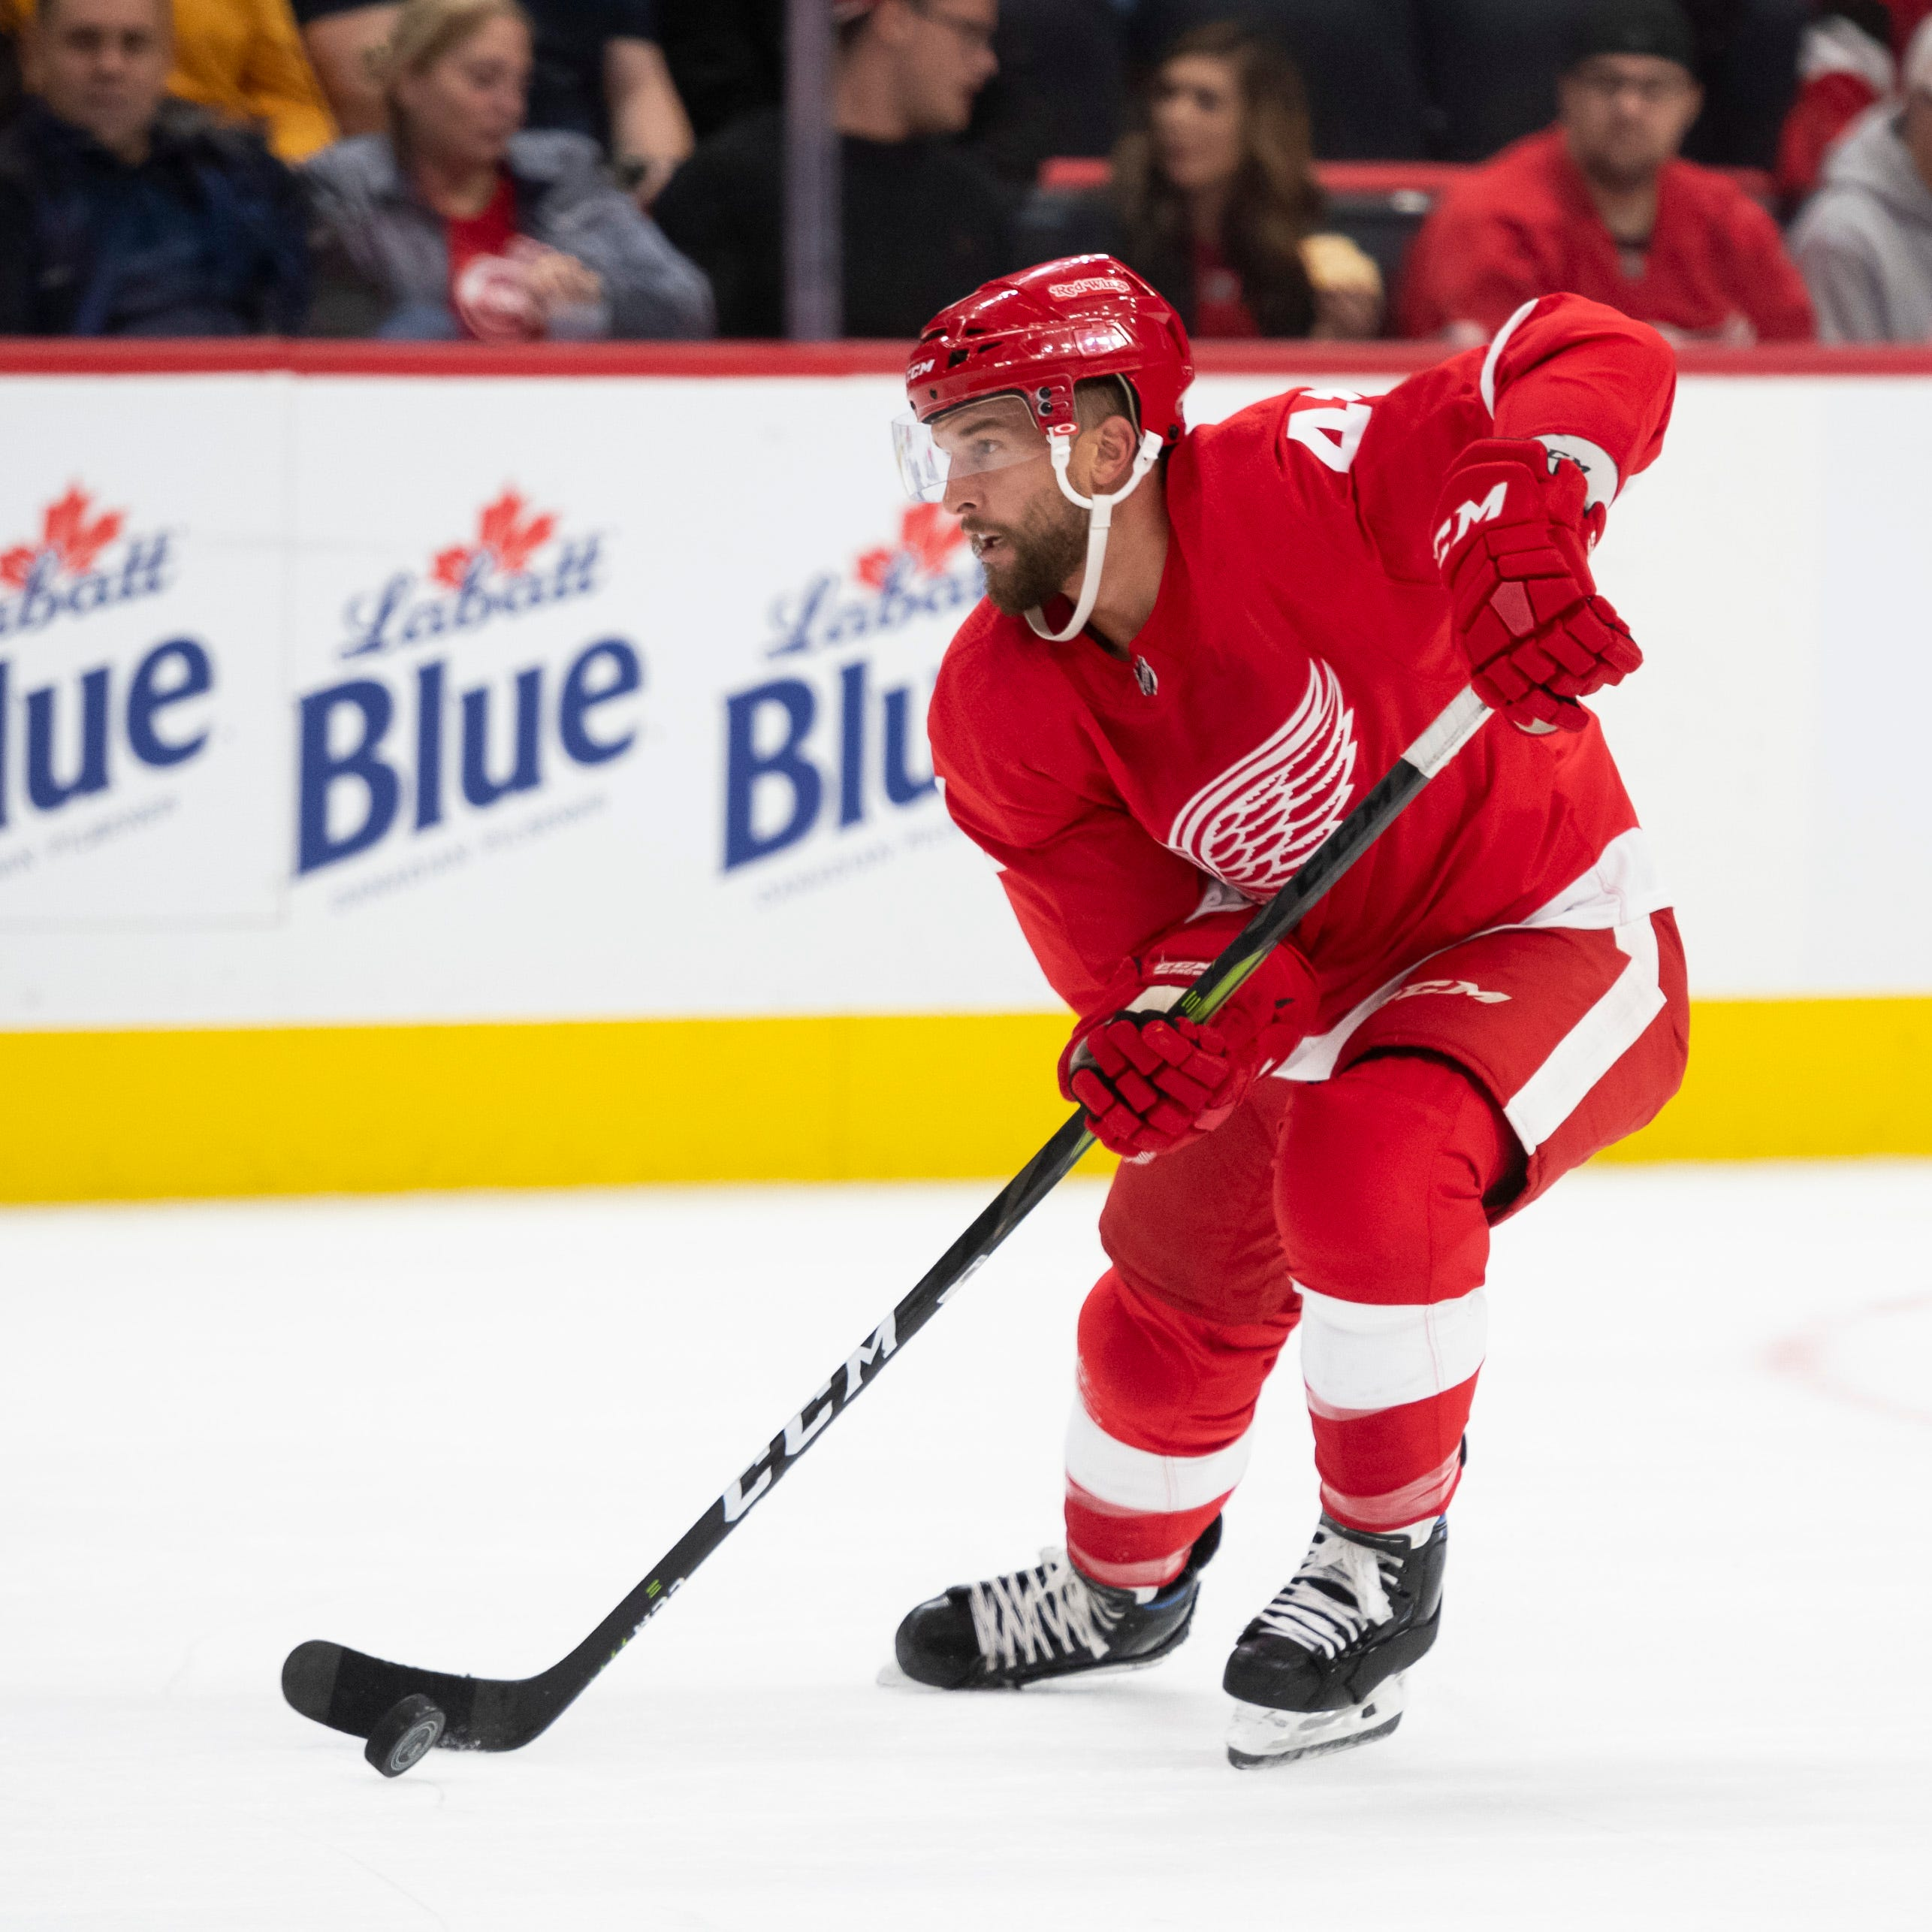 'Winning player' Luke Glendening stays positive as losses, rumors mount